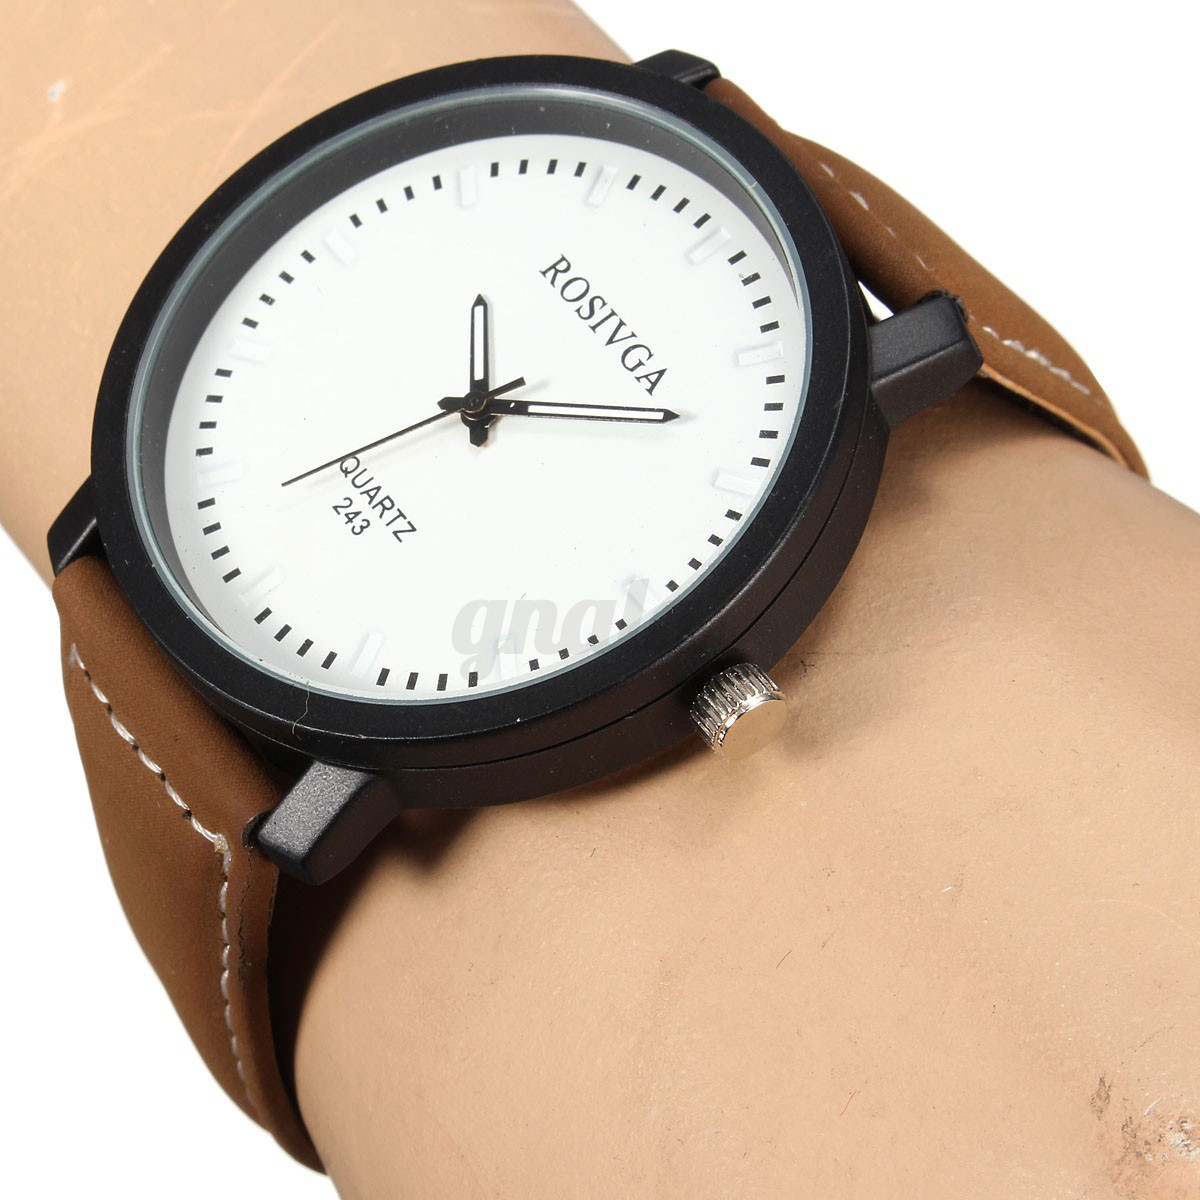 herren damenuhr retro lederarmband uhr pu leder armbanduhr quarzuhr gro analog ebay. Black Bedroom Furniture Sets. Home Design Ideas